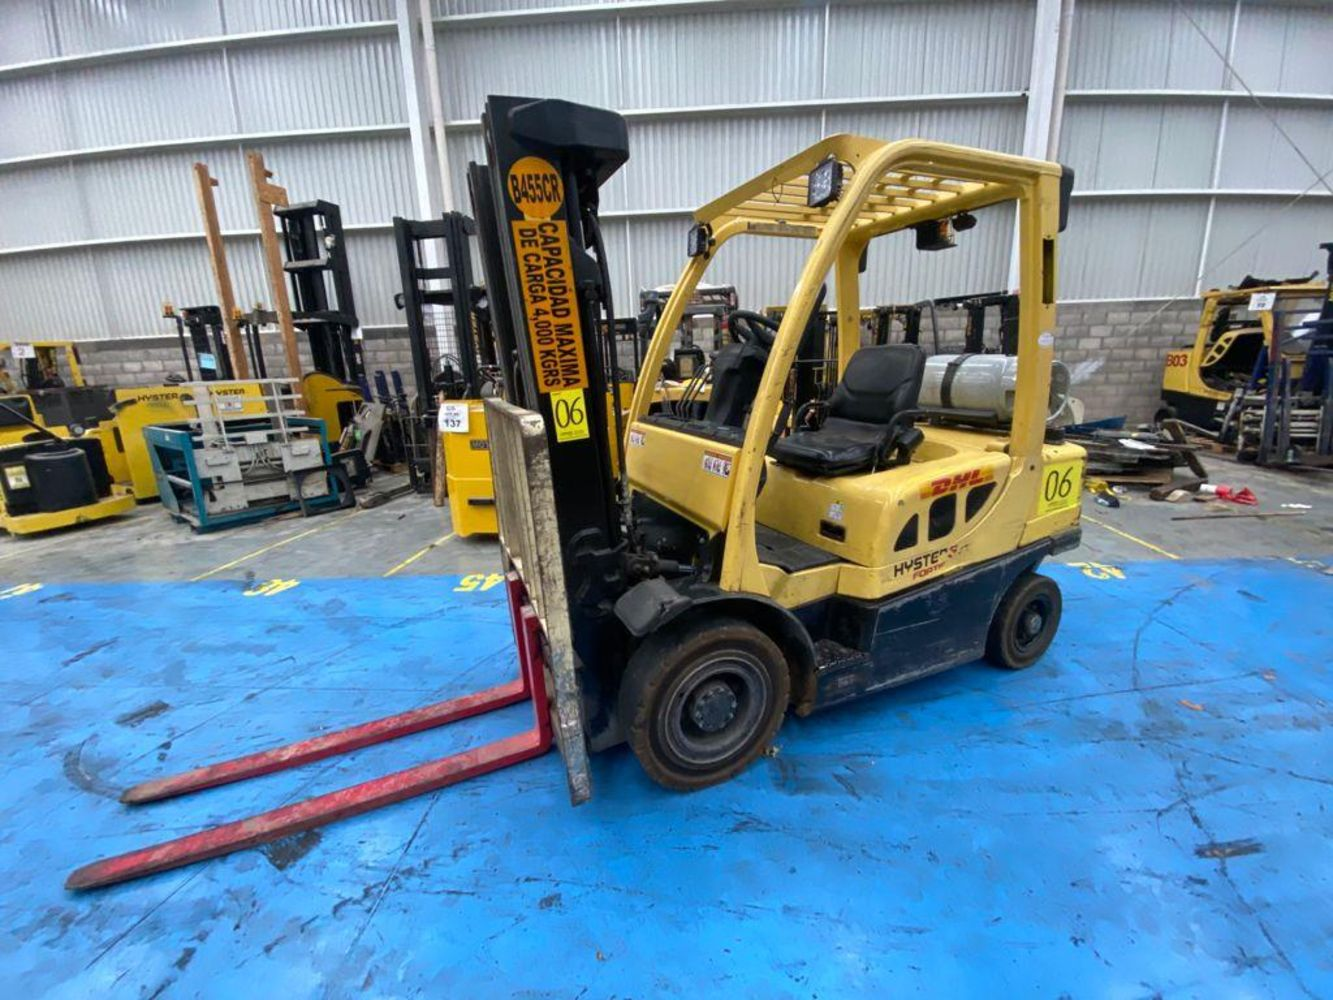 More than 70 YALE and HYSTER Forklifts  - Excellent condition!!!